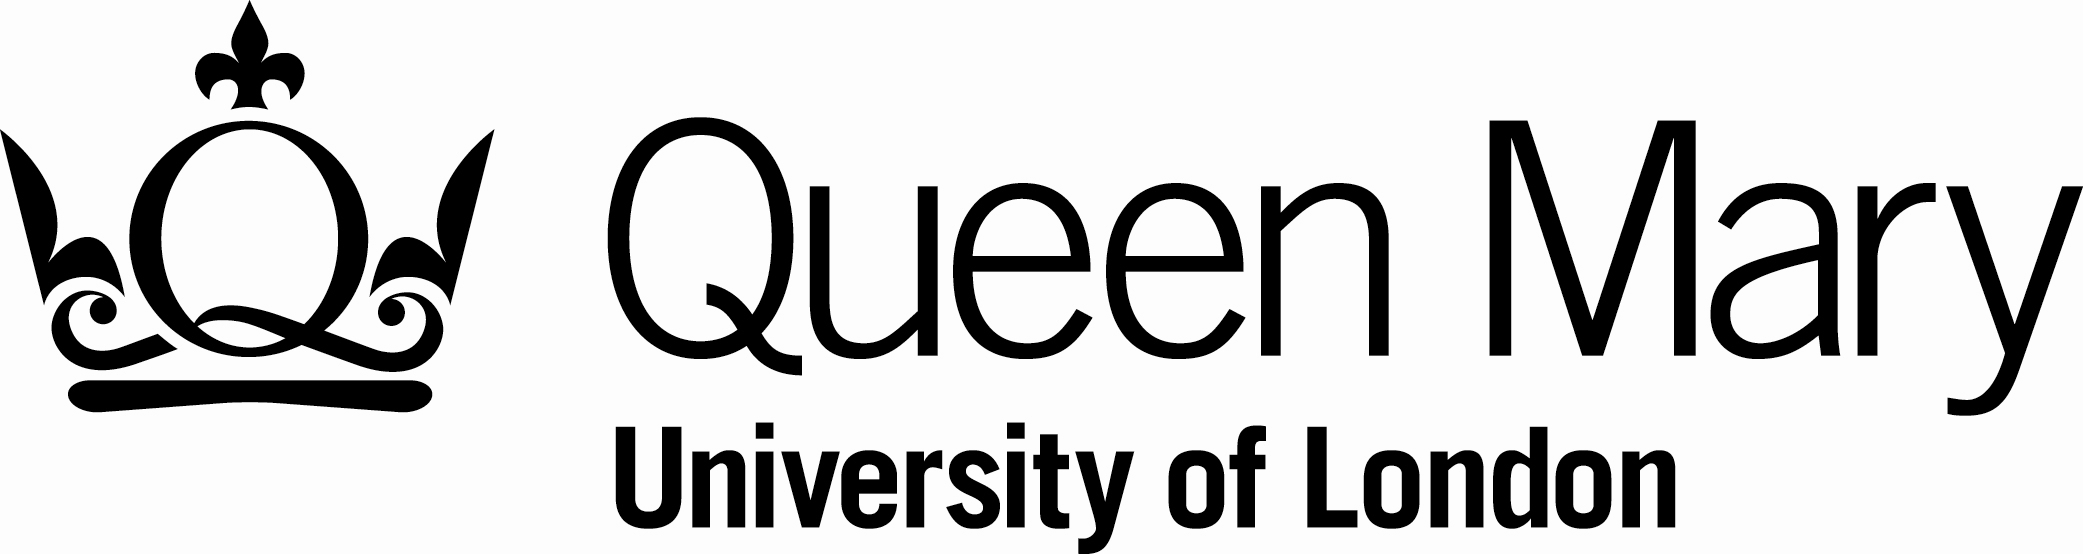 Queen Mary - University of London